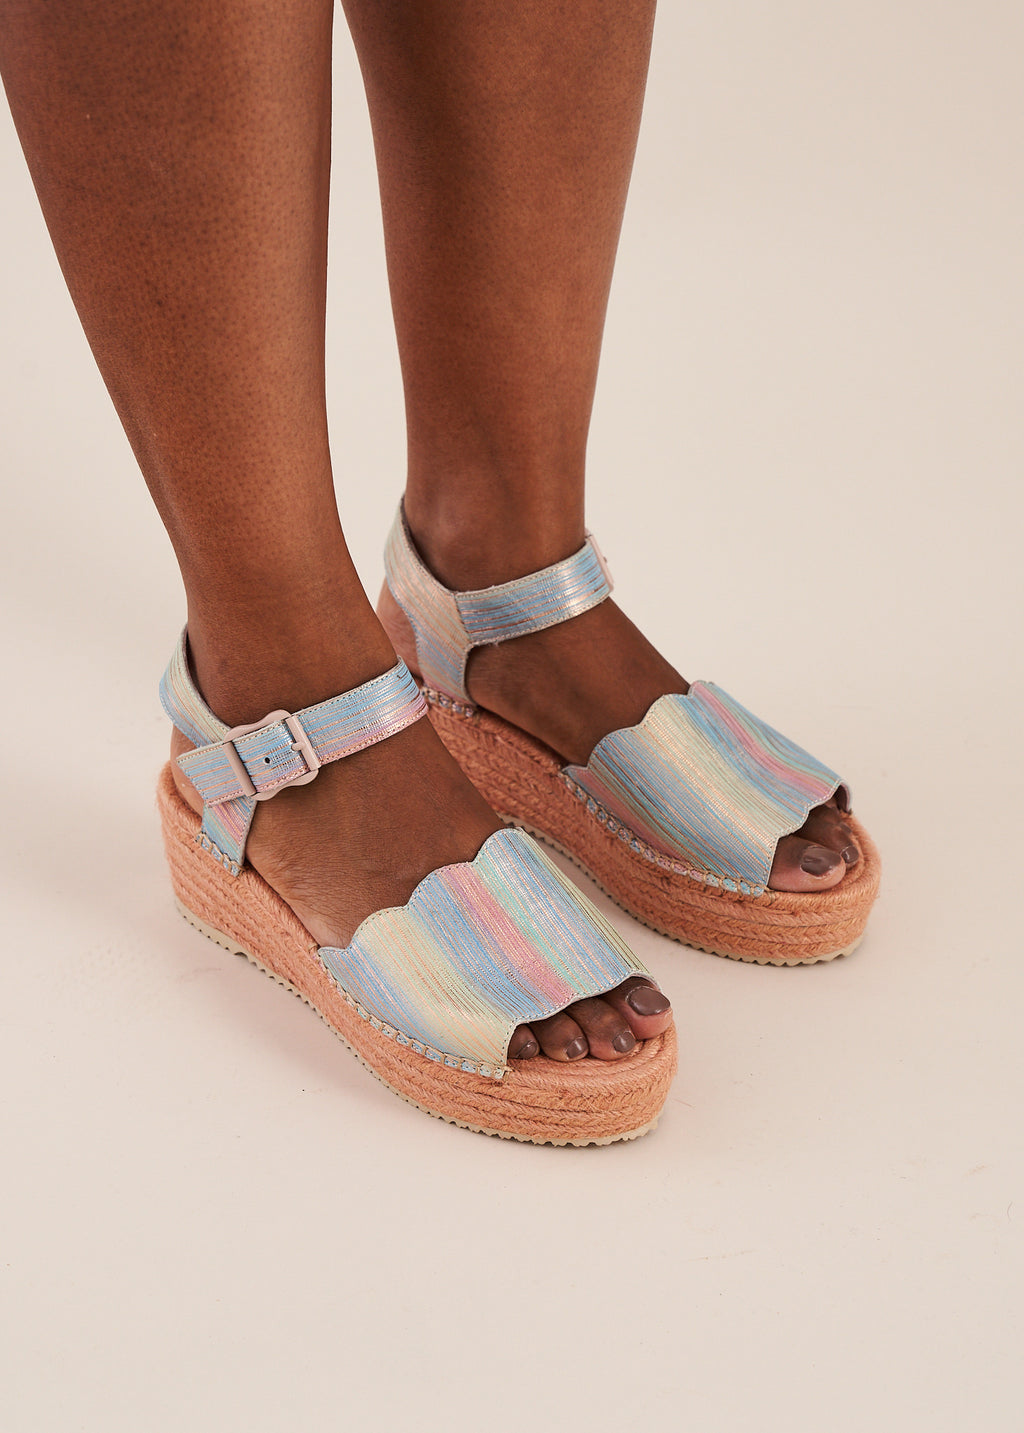 Esther flatform espadrille wedge in multi pastel stripe leather with nude pink wedge, by Miss L Fire. Limited edition, ethically made.